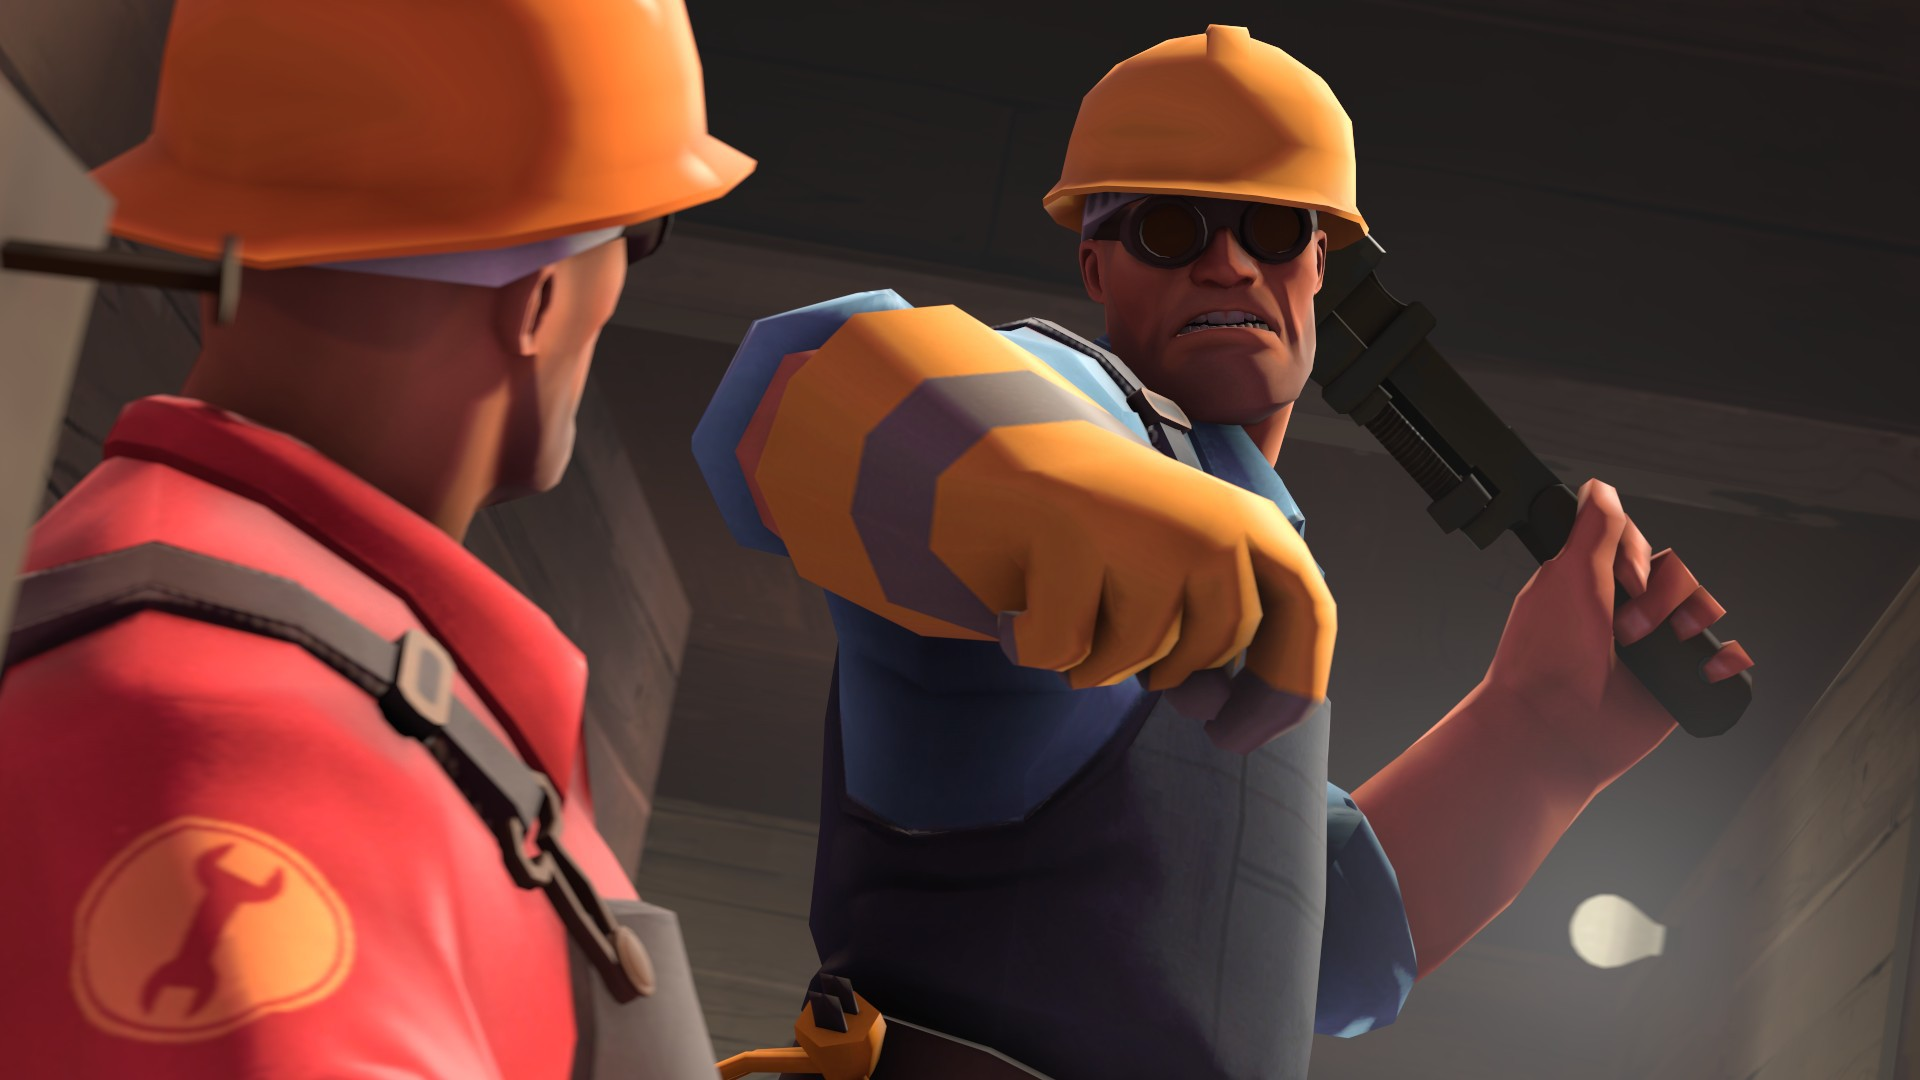 Video-games-engineer-tf-team-fortress-1920x1080-games-engineer-tf-team-fortress-via-www-wallpaper-wp36011873